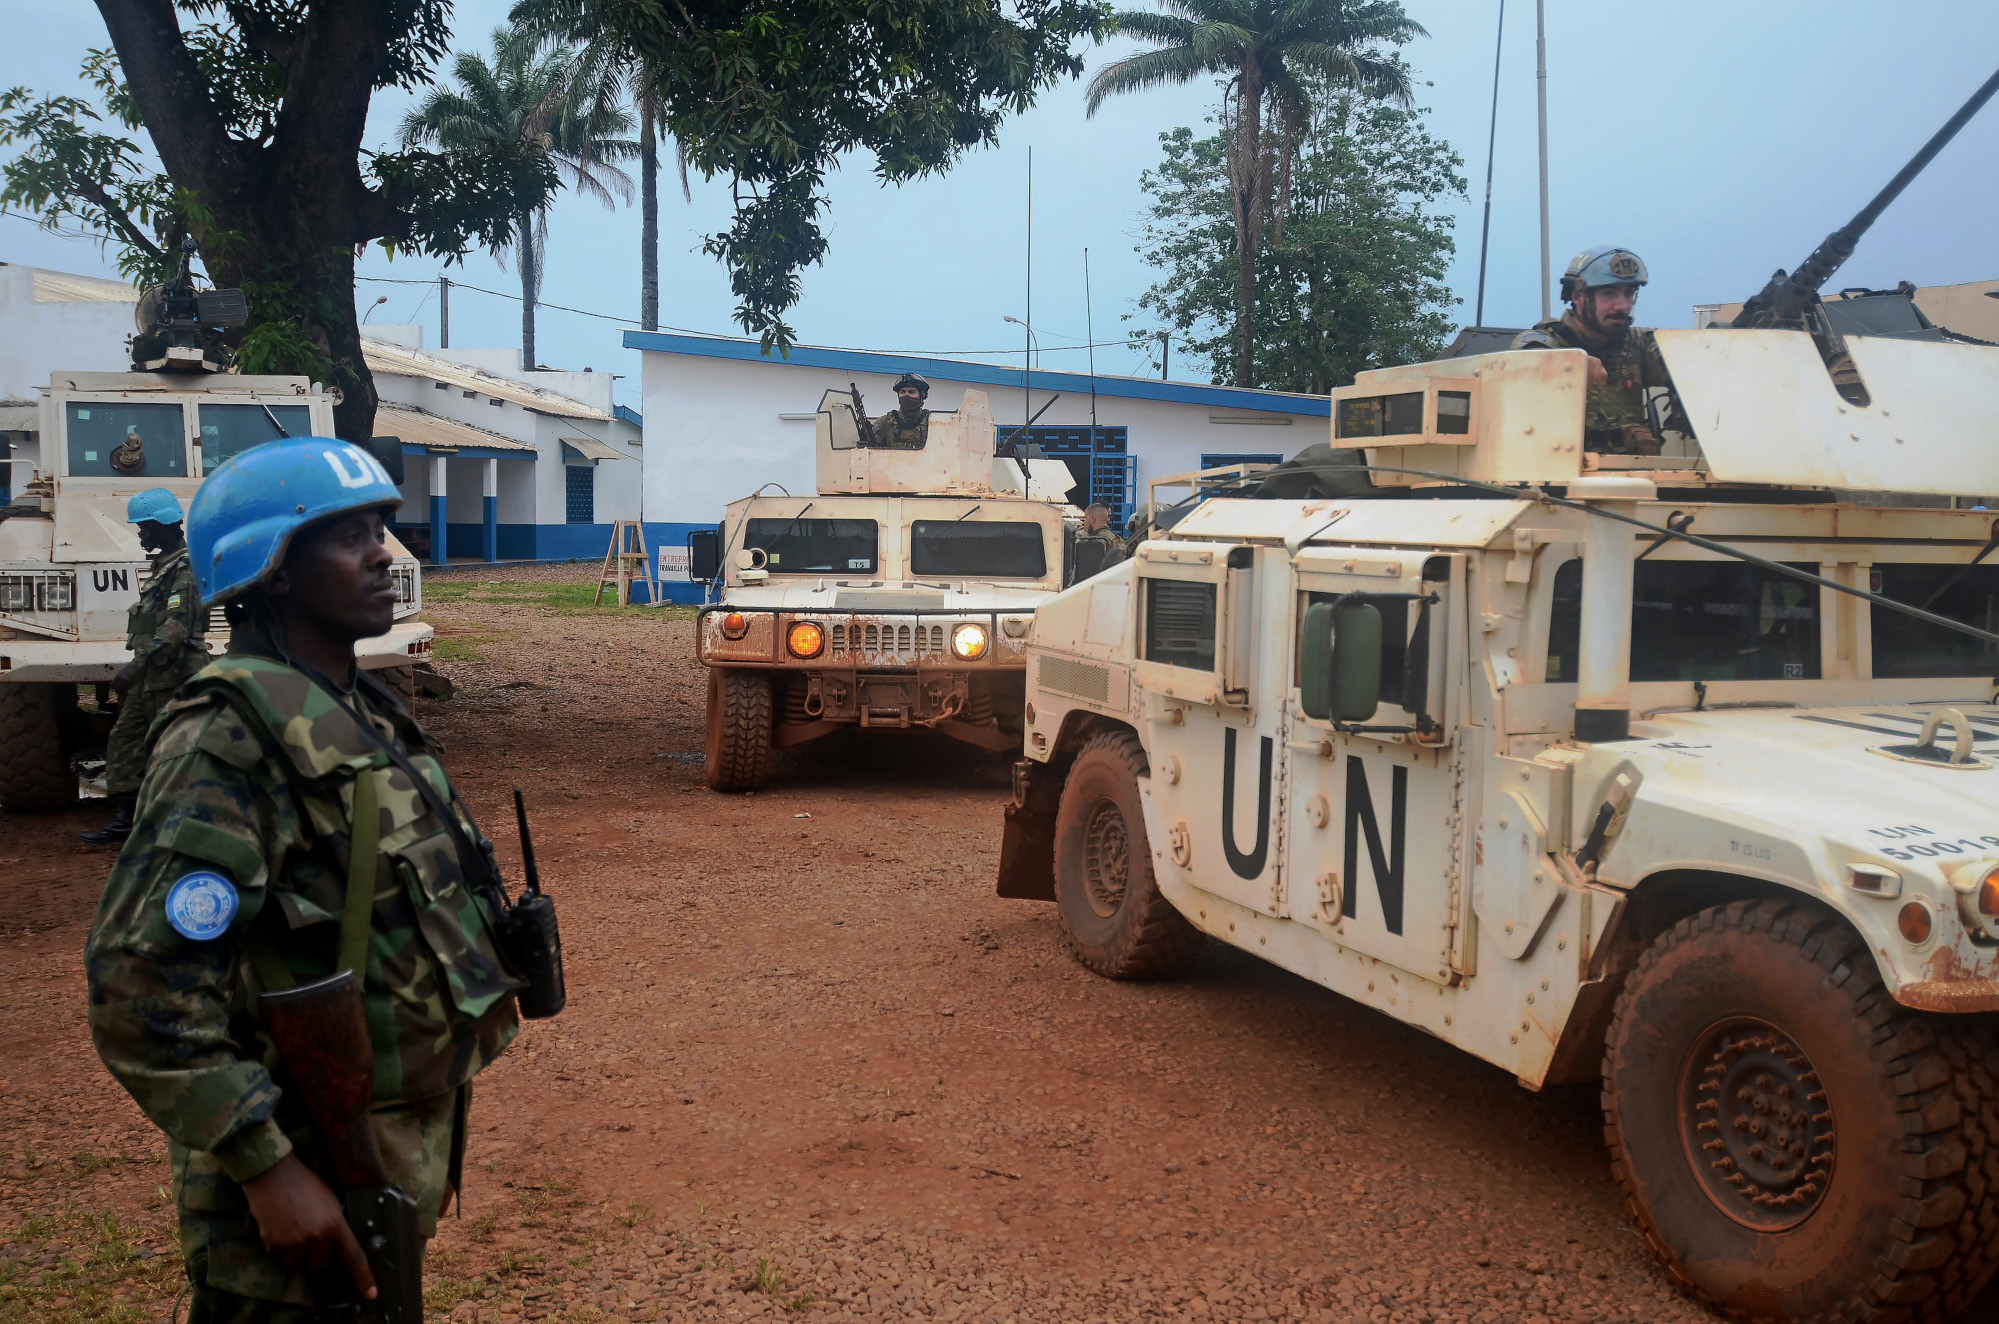 A U.N. soldier stands guard as a mixed UN military convoy of Portuguese special forces and Cameroonian and Mauritanian peacekeepers prepares to patrol the PK5 neighborhood in Bangui, Central African Republic, on Nov. 17, 2017. MUST CREDIT: Bloomberg photo by Pauline Bax.